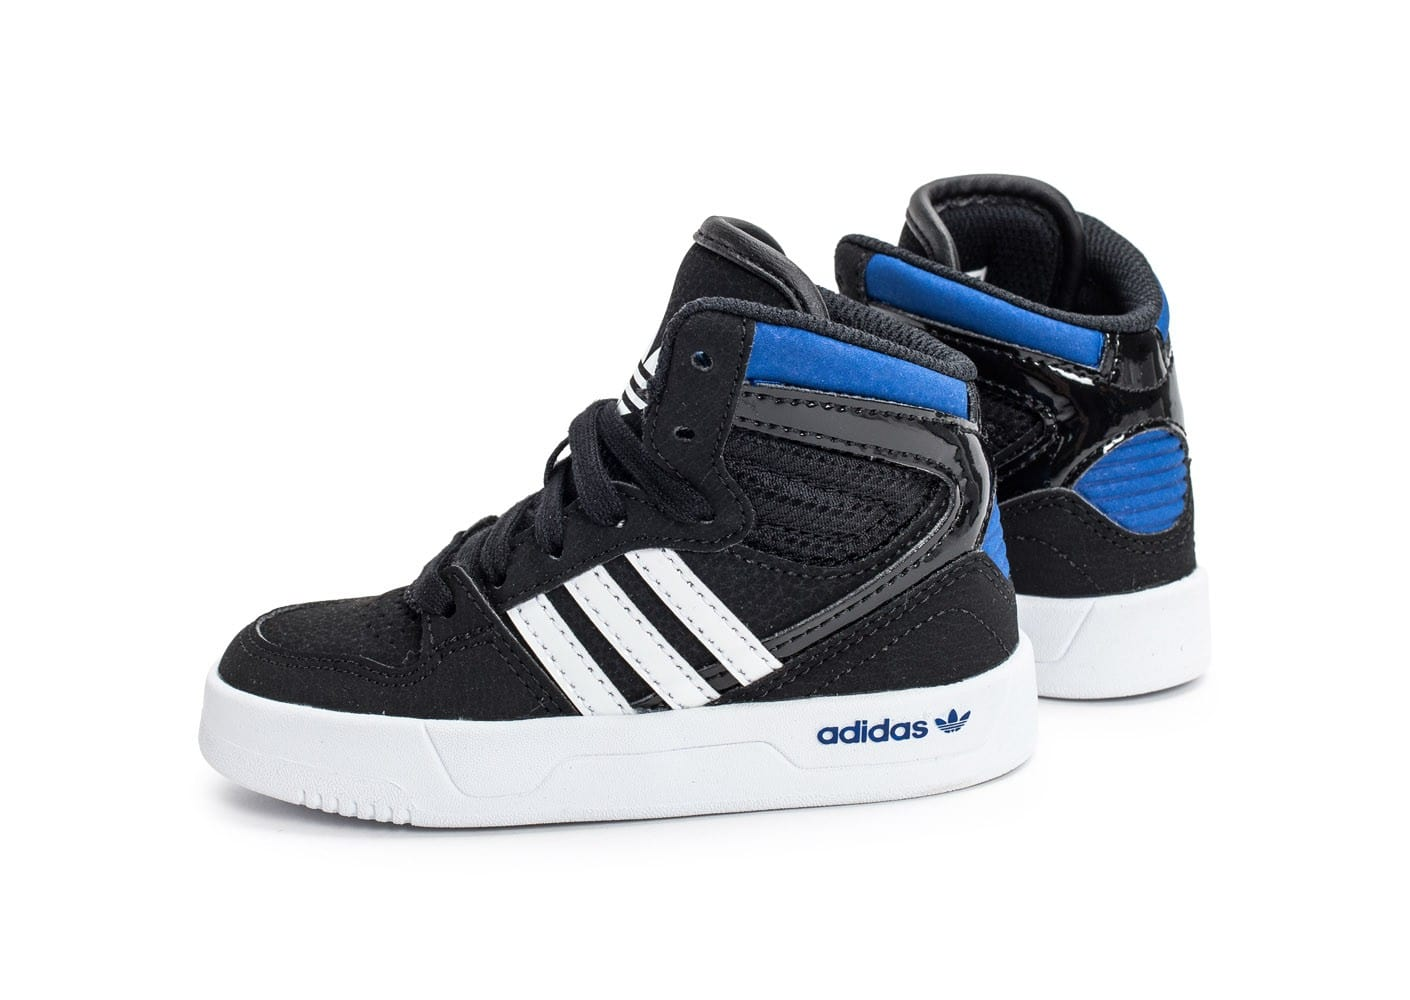 adidas court attitude b b noire chaussures adidas chausport. Black Bedroom Furniture Sets. Home Design Ideas